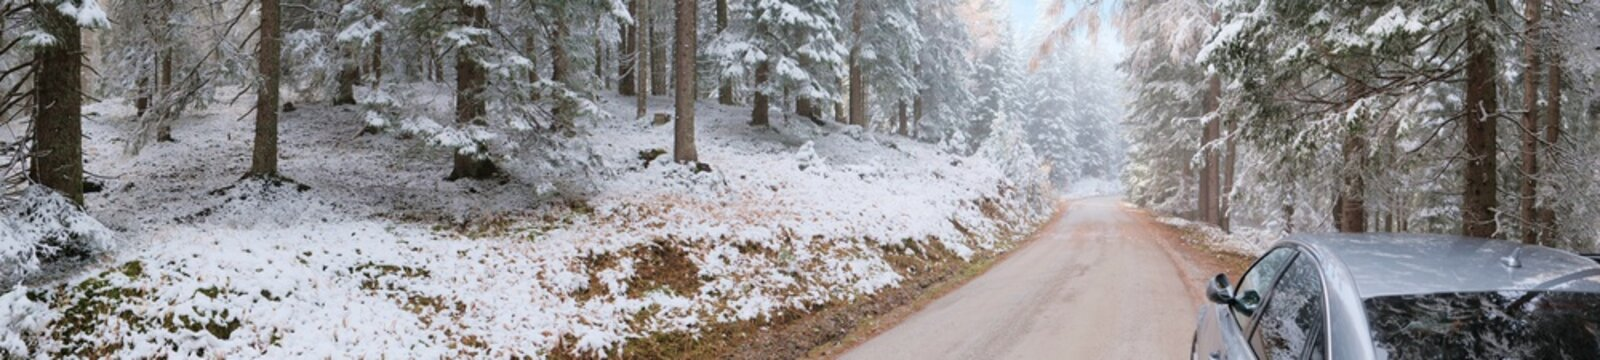 Winter road trip.Car on a winter mountain road.Gray car on the road in a winter snowy forest.Car adventure